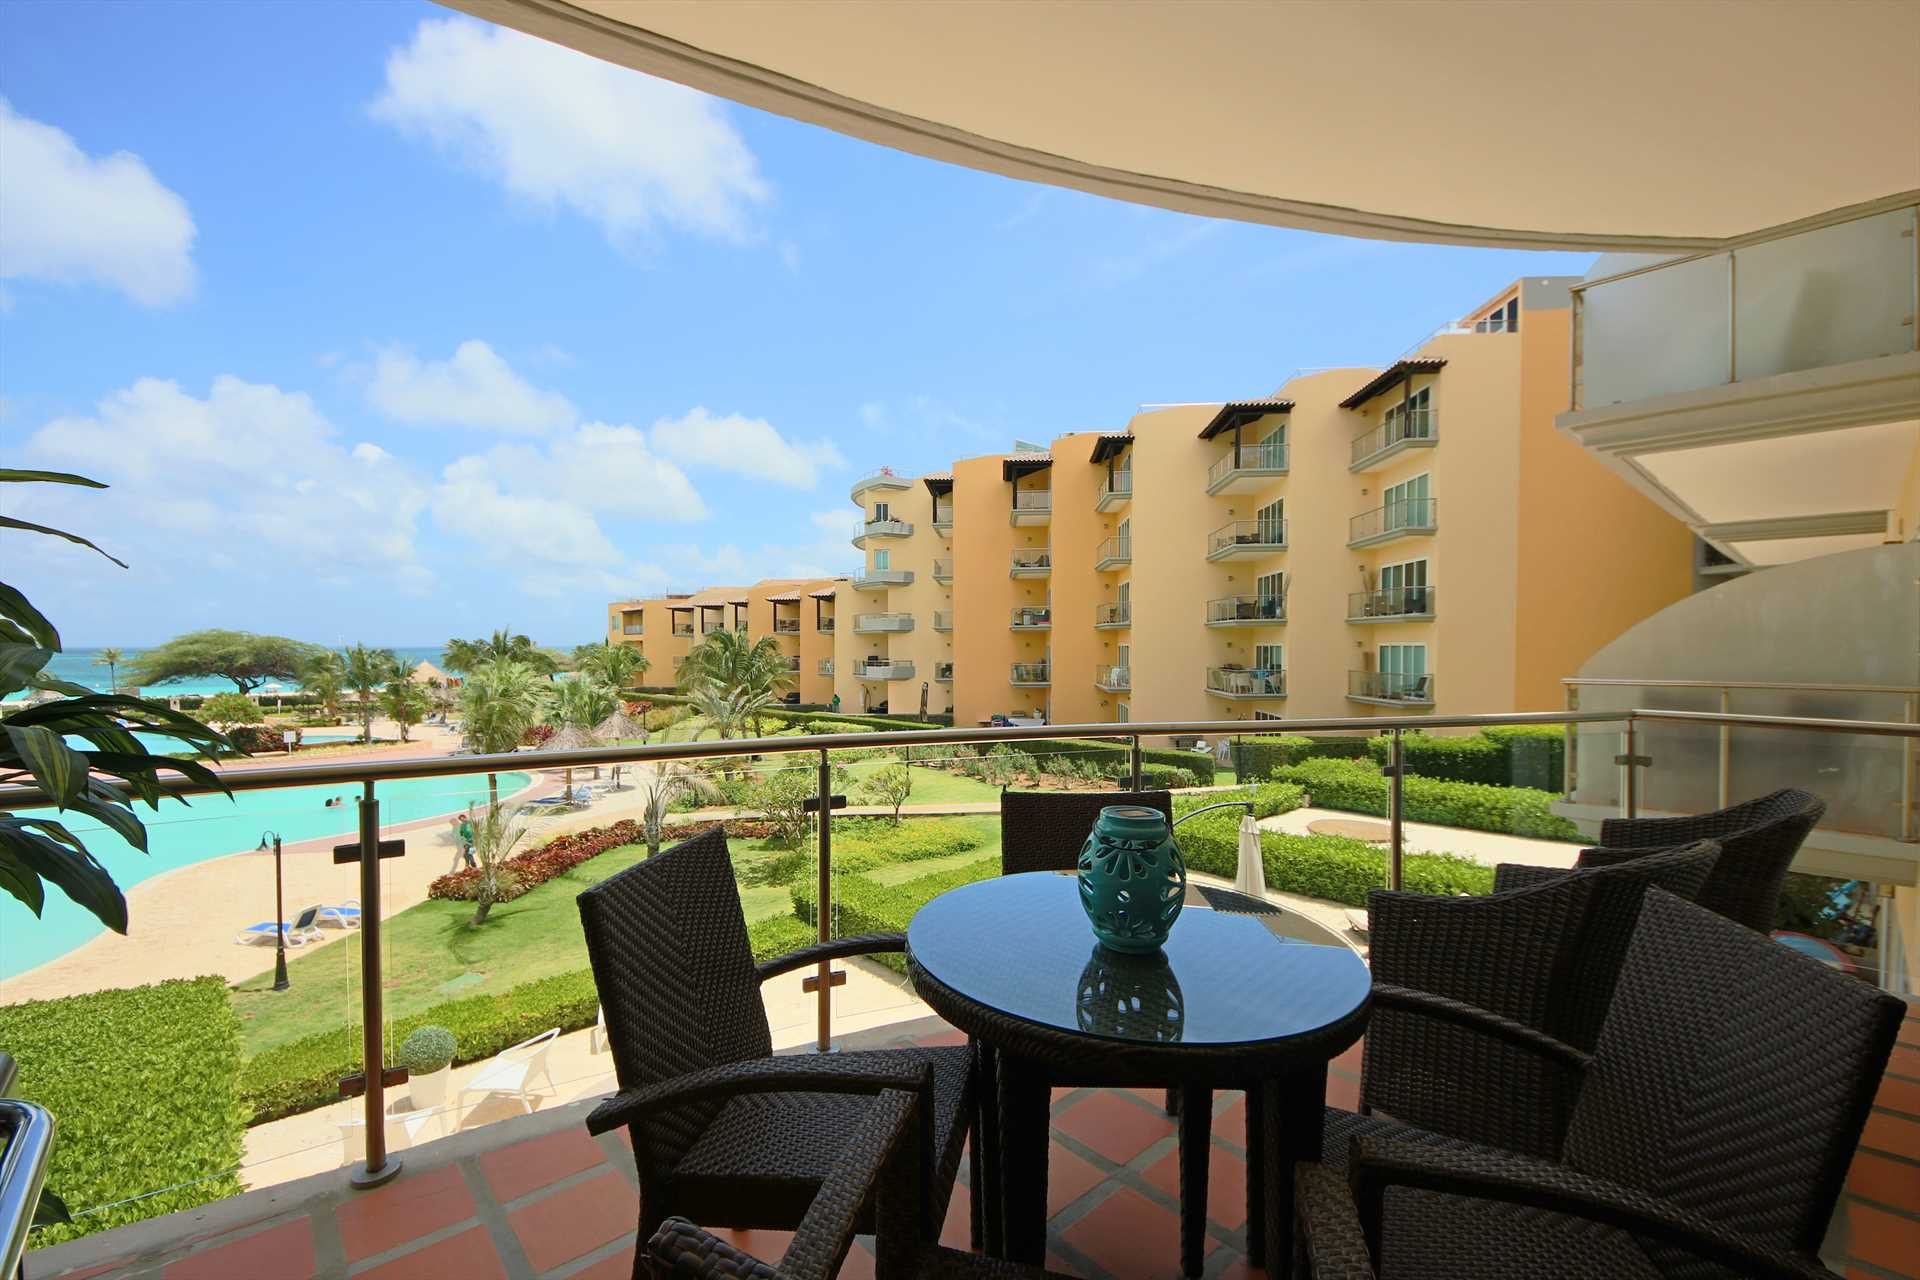 Enjoy Aruba's sunsets on your own balcony with pool and ocean view!